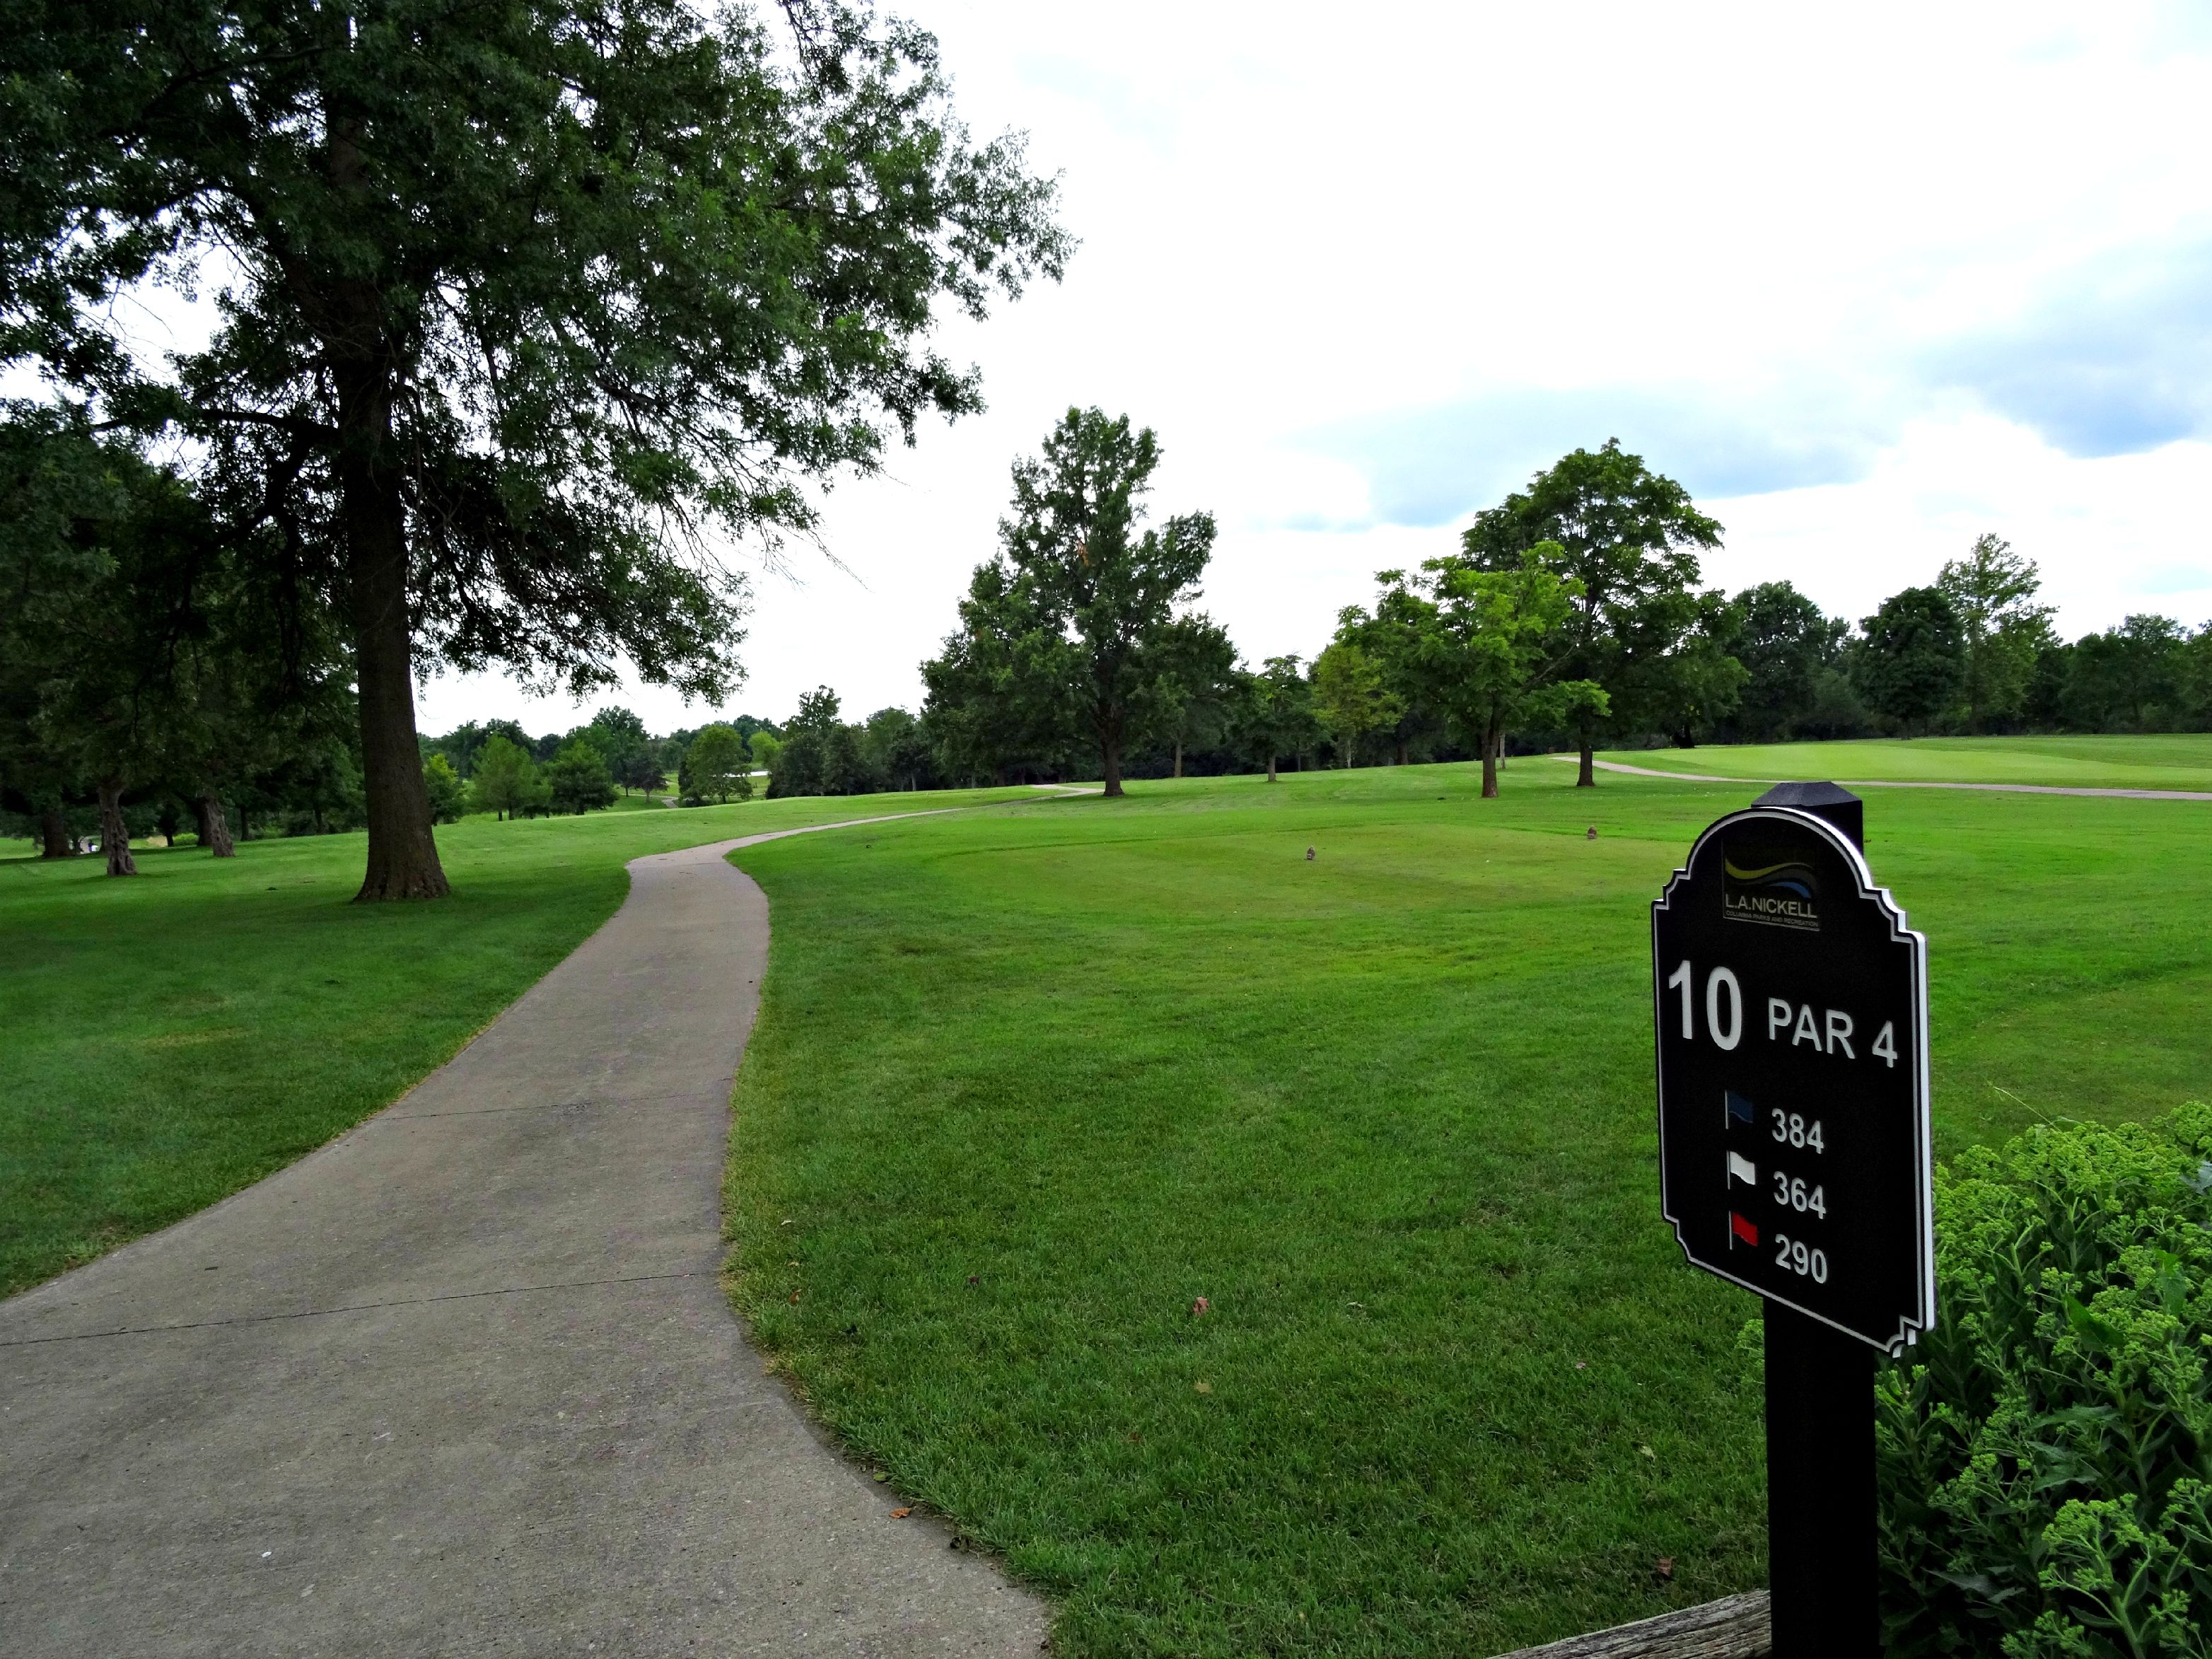 L A  Nickell, 18 hole golf course located within Cosmo Park